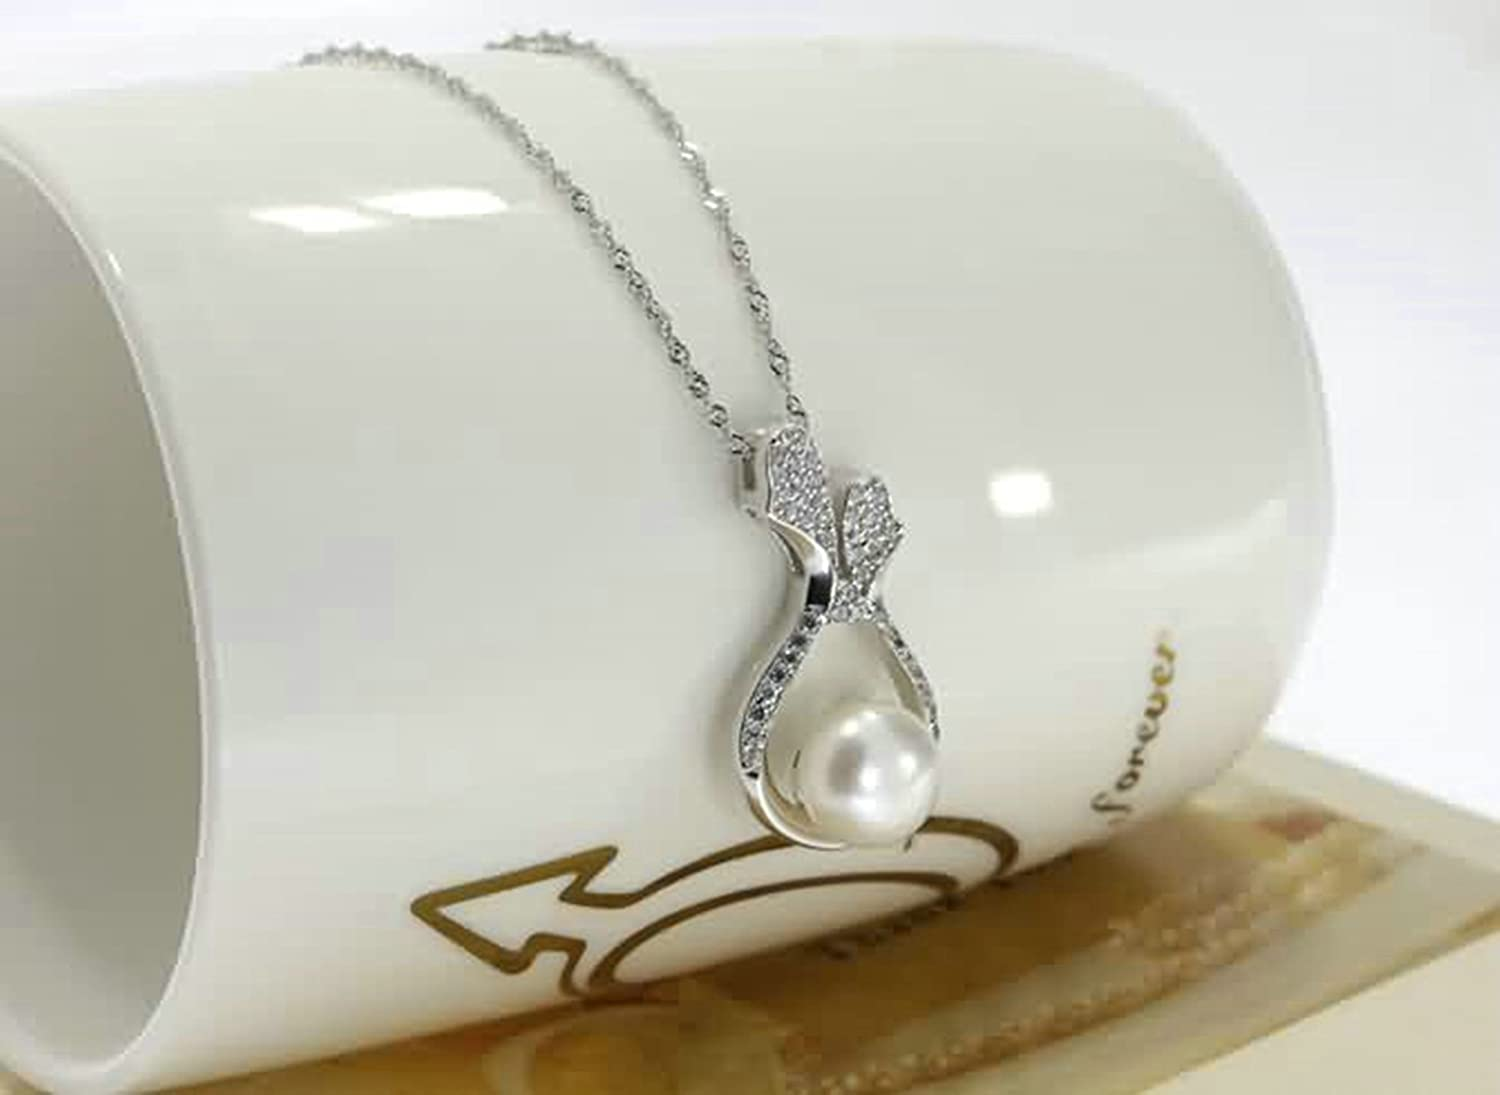 AMDXD Jewelry Women Silver Plated Pendant Necklaces Drop Pearl Cubic Zirconia Silver 2.8X1.5CM